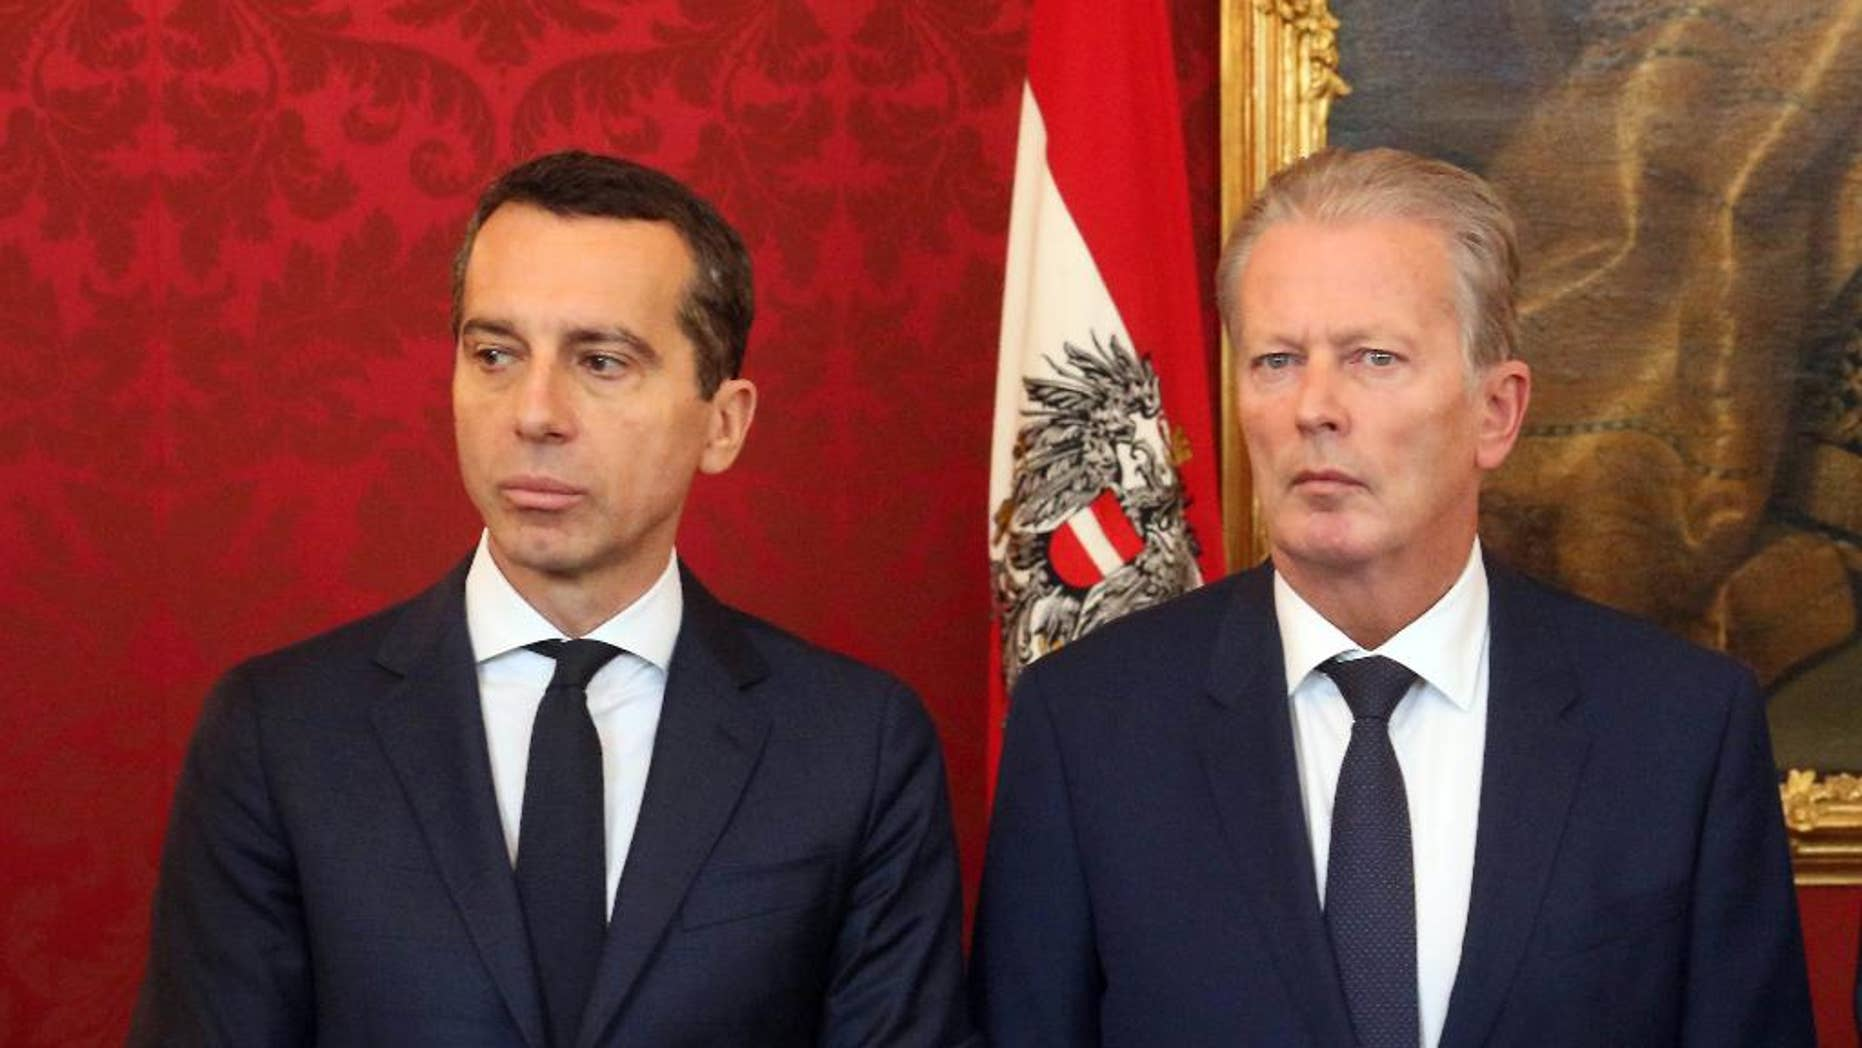 New Austrian Chancellor Christian Kern and Vice Chancellor Reinhold Mitterlehner, from left, attend an inauguration ceremony of four new ministers at the Hofburg palace in Vienna, Austria, Wednesday, May 18, 2016. (AP Photo/Ronald Zak)